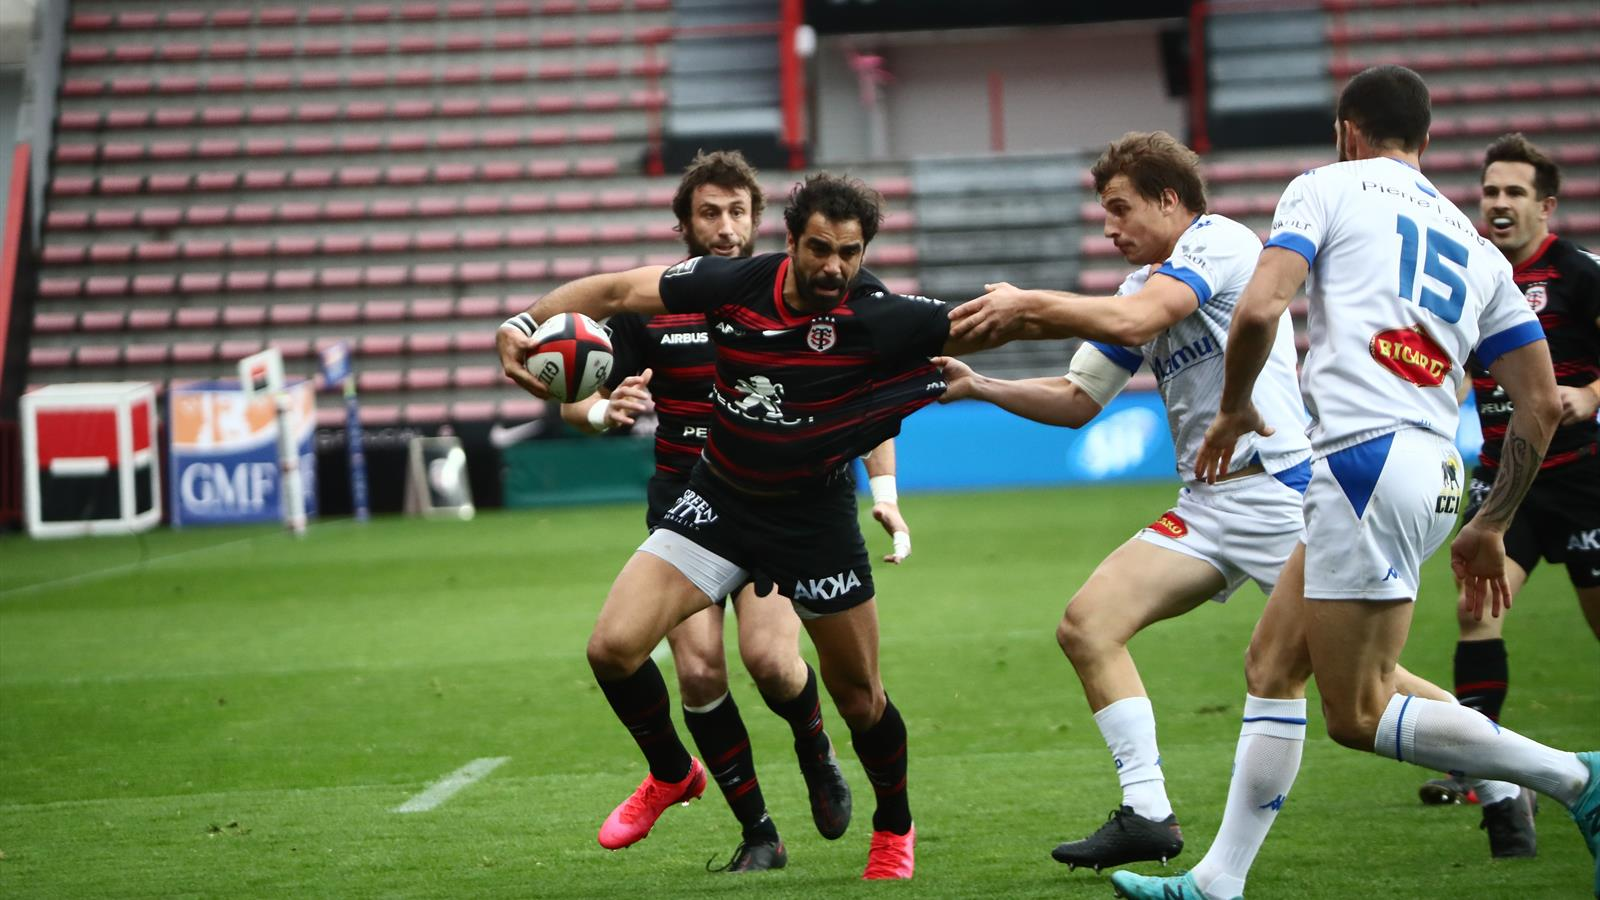 Top 14 – Toulouse and Castres back to back (16-16) – Top 14 2020-2021 –  Rugby | En24 World